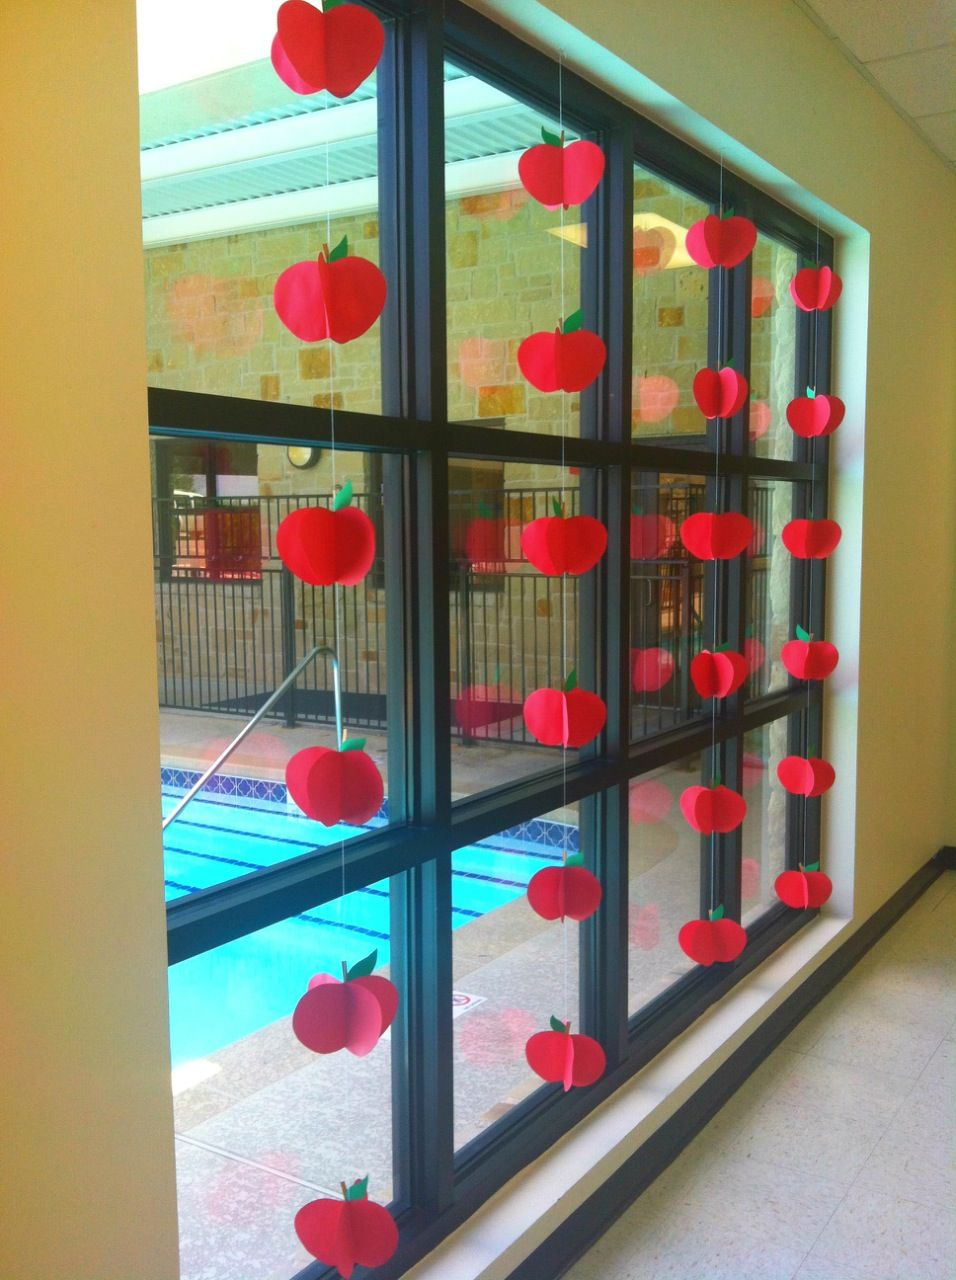 Classroom Windows Decoration Ideas ~ Back to school apple window display decor